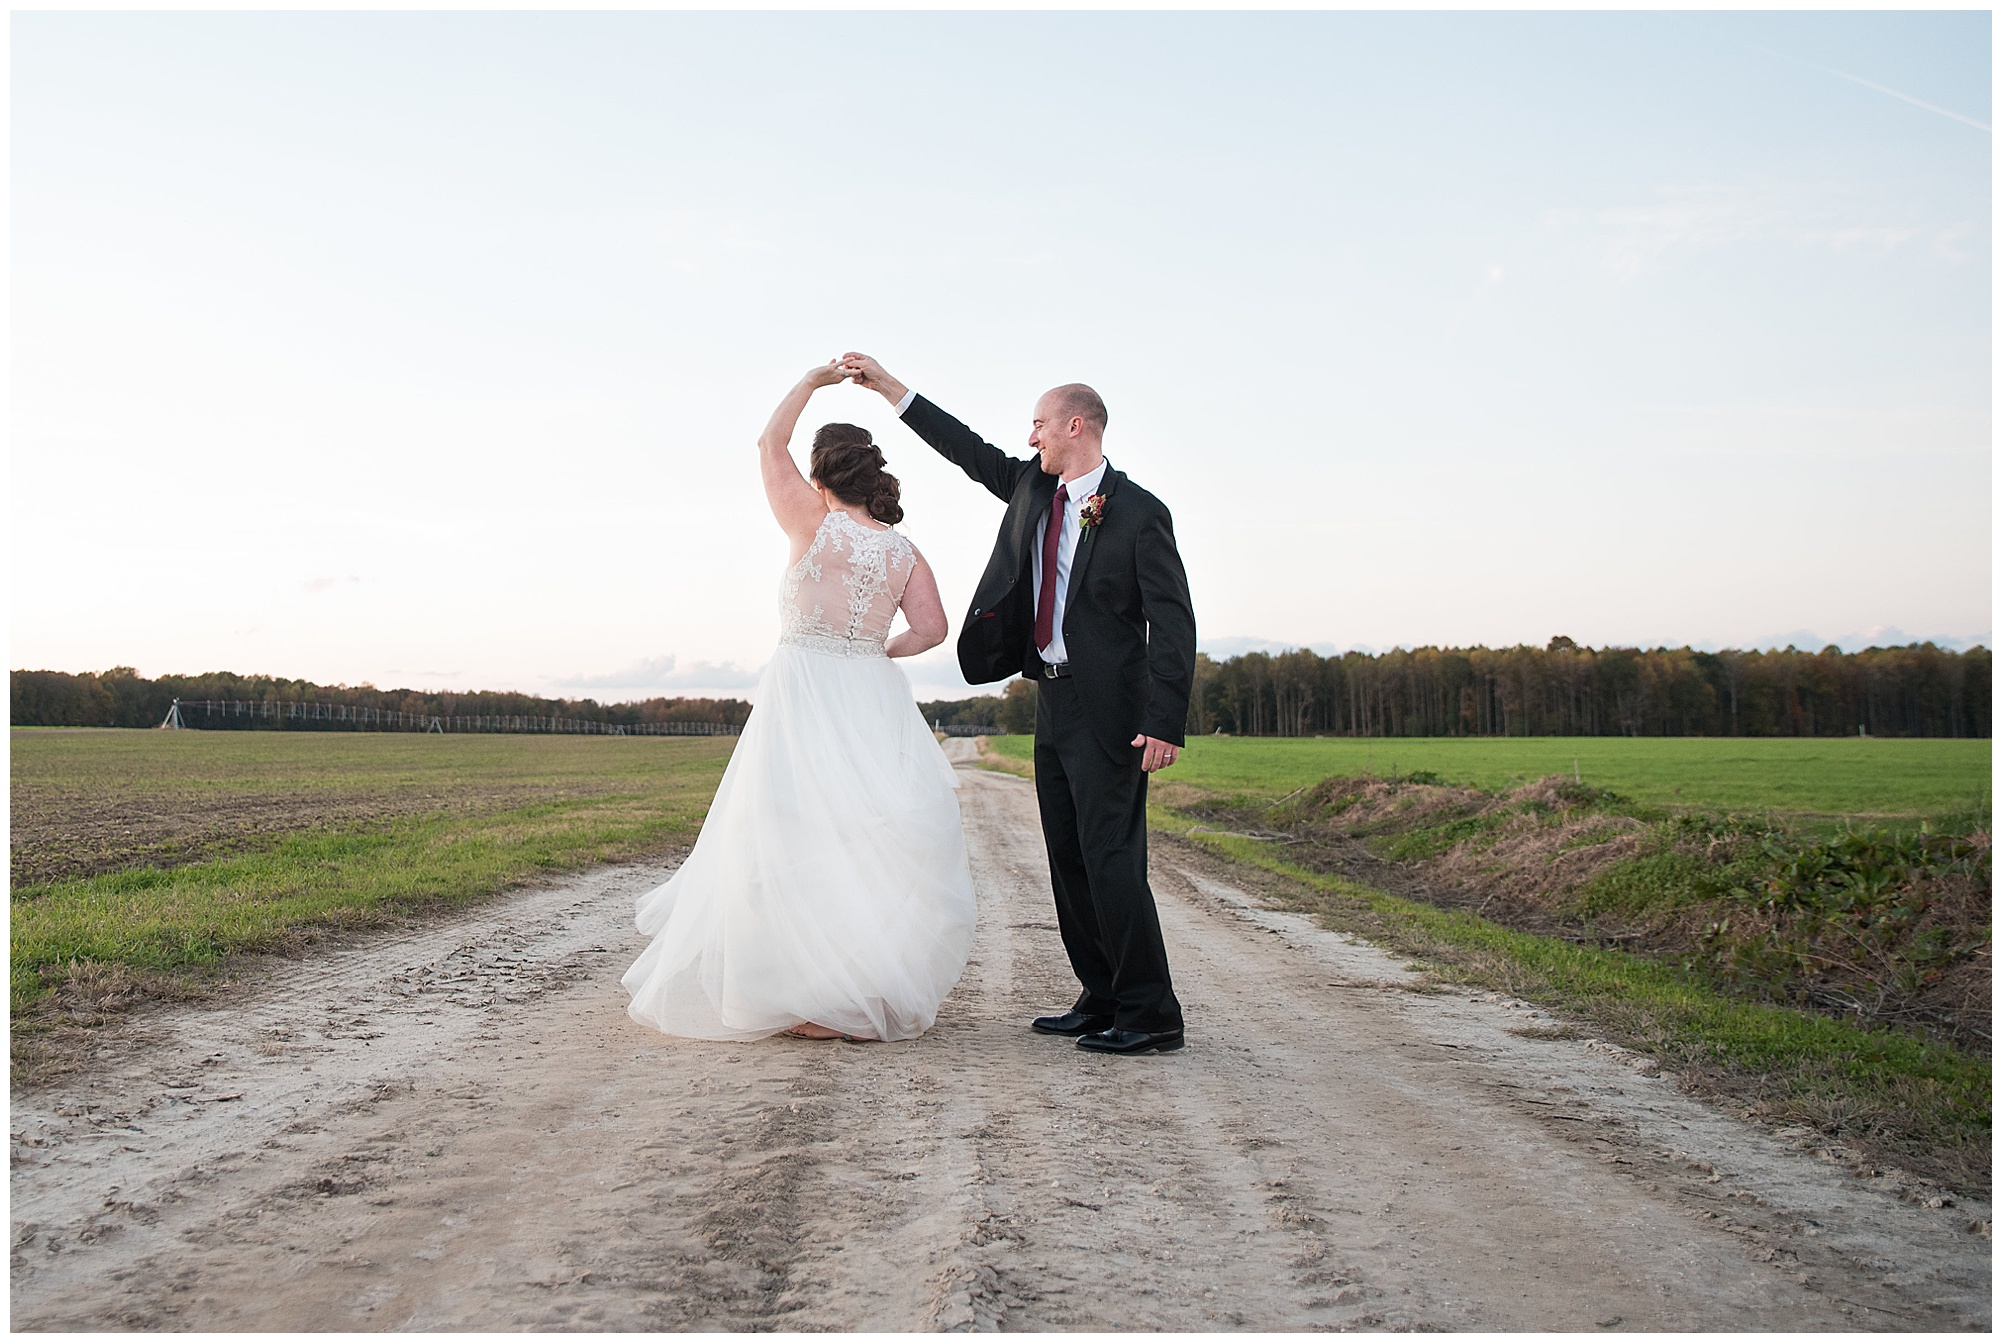 wedding photos at covered bridge inn bed and breakfast farm in lewes delaware. historic wedding barn venue on the eastern shore. fall wedding in november with rustic decor theme. couple twirling outdoors on dirt road on a farm wearing white wedding dress and black suit.